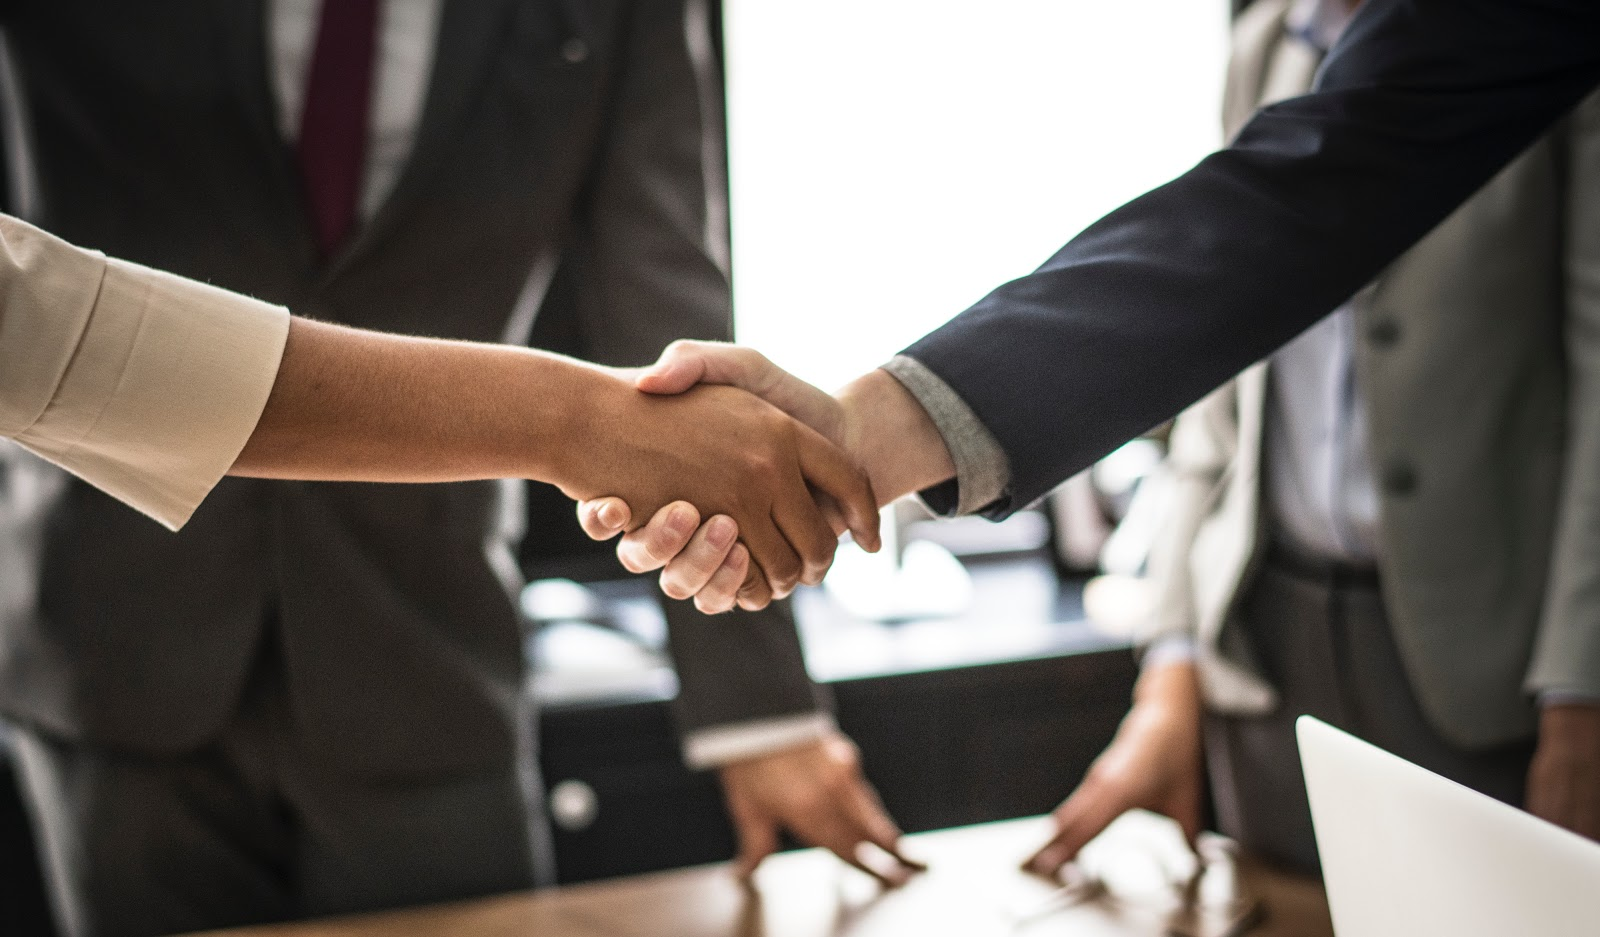 One-on-one conversations with direct eye contact allow for building and nurturing relationships with clients. No technology can recreate the genuine connection made through a handshake and body language.